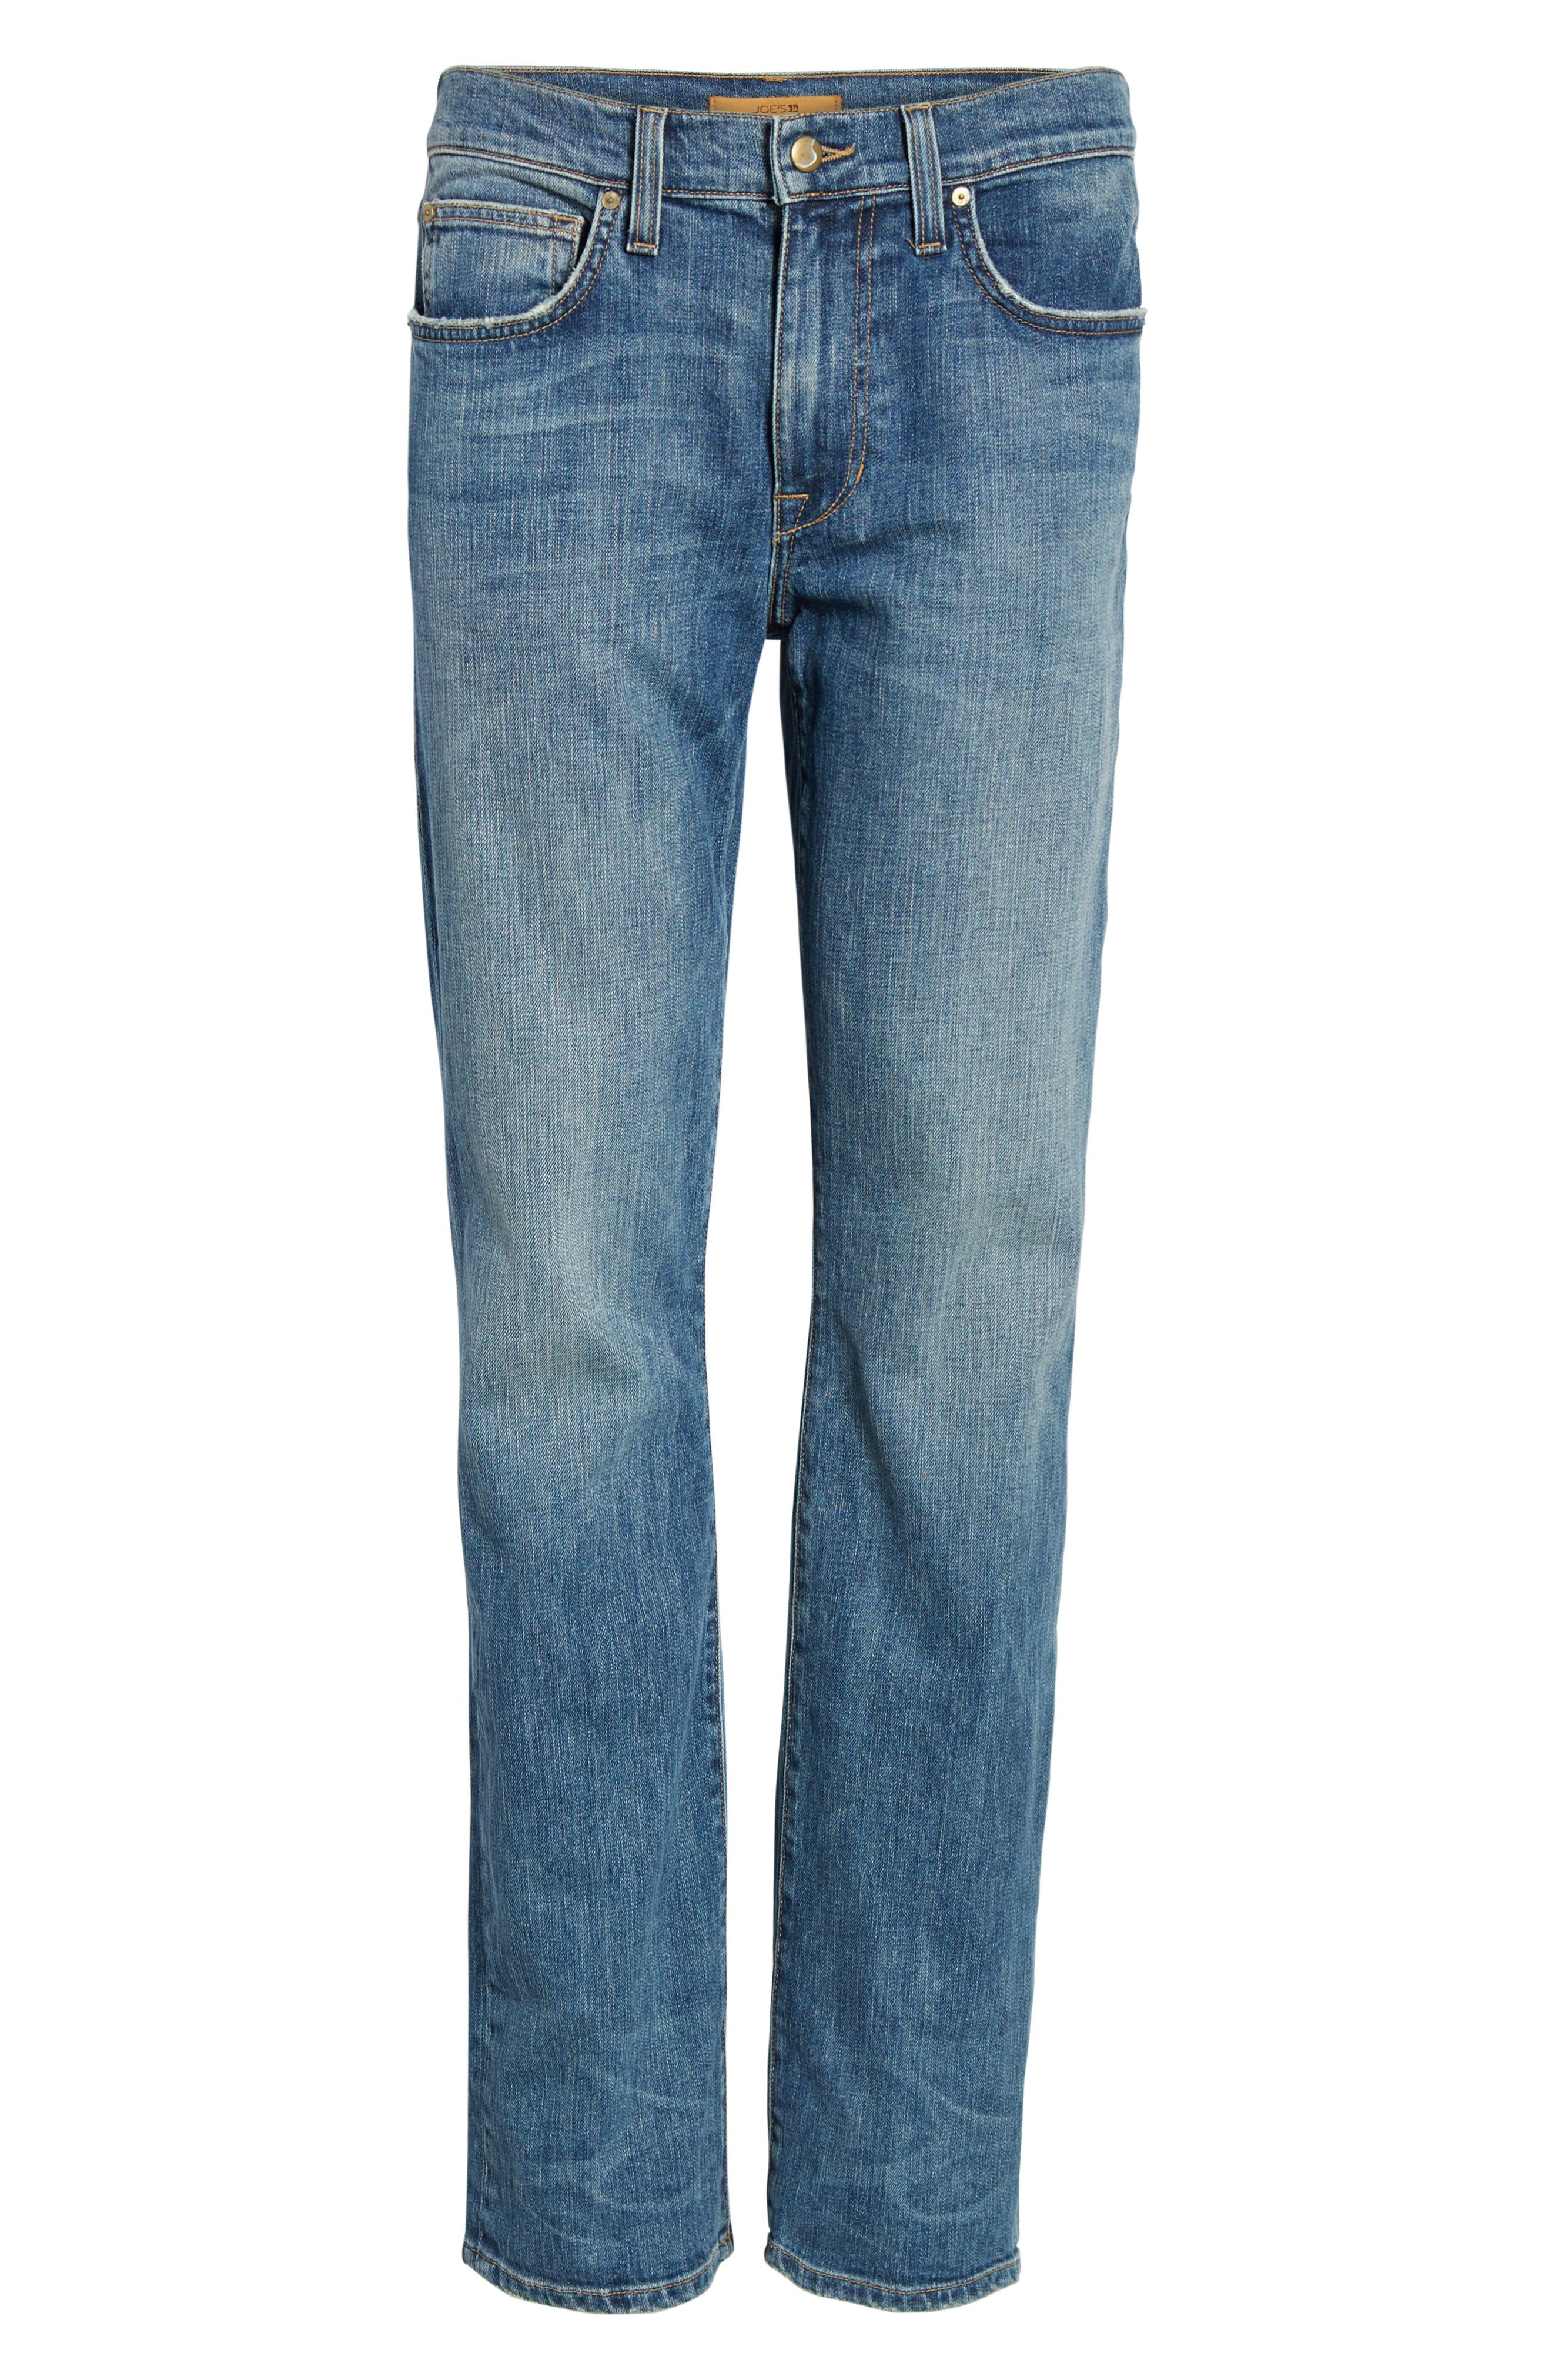 Brixton Slim Straight Fit Jeans,                             Alternate thumbnail 6, color,                             400